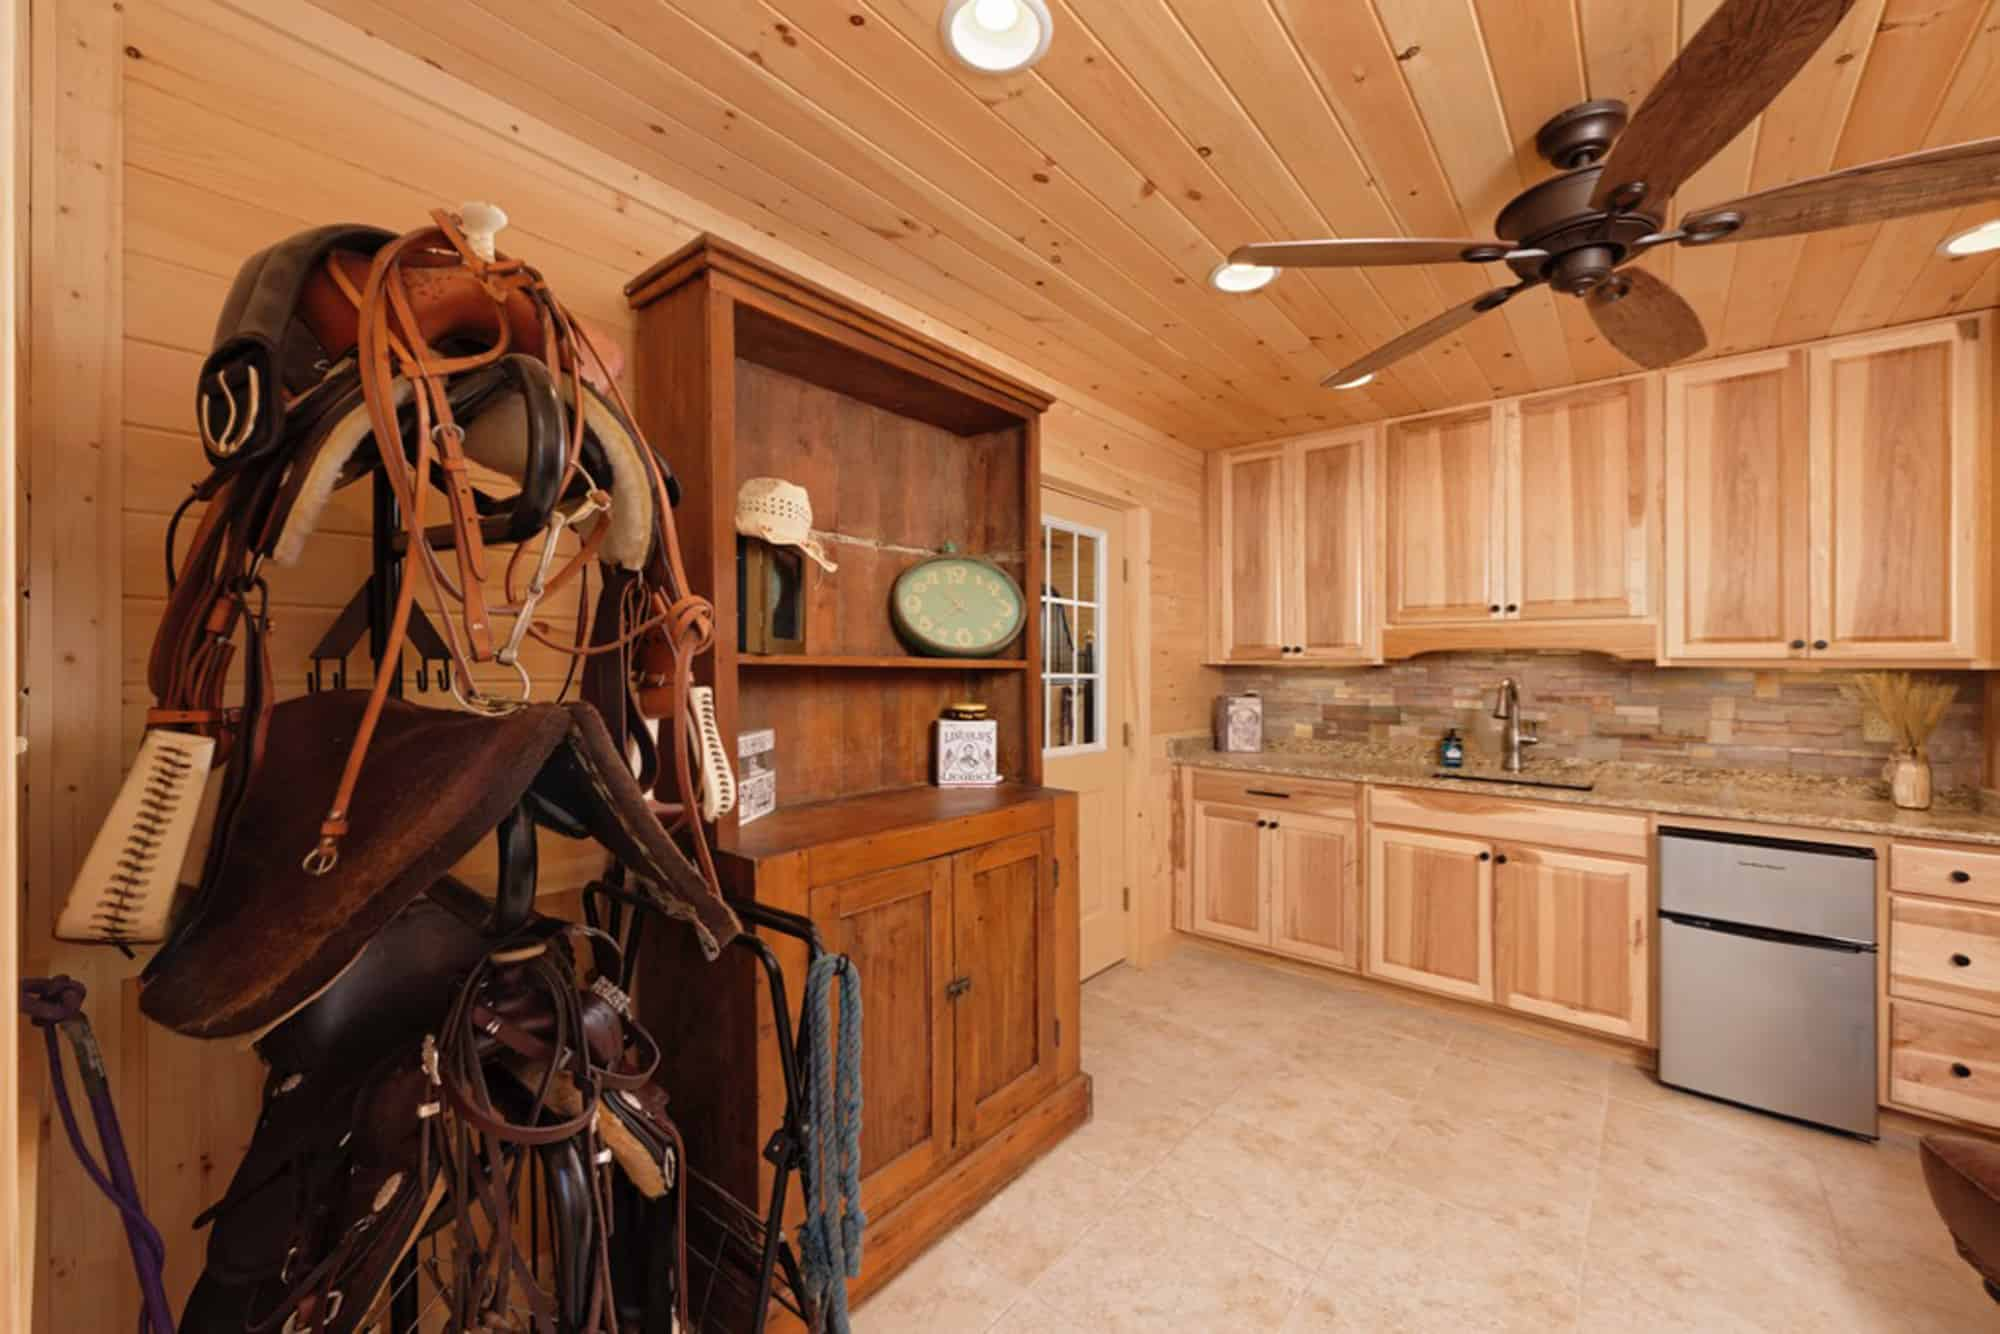 tack room kitchenette ceiling fan saddle